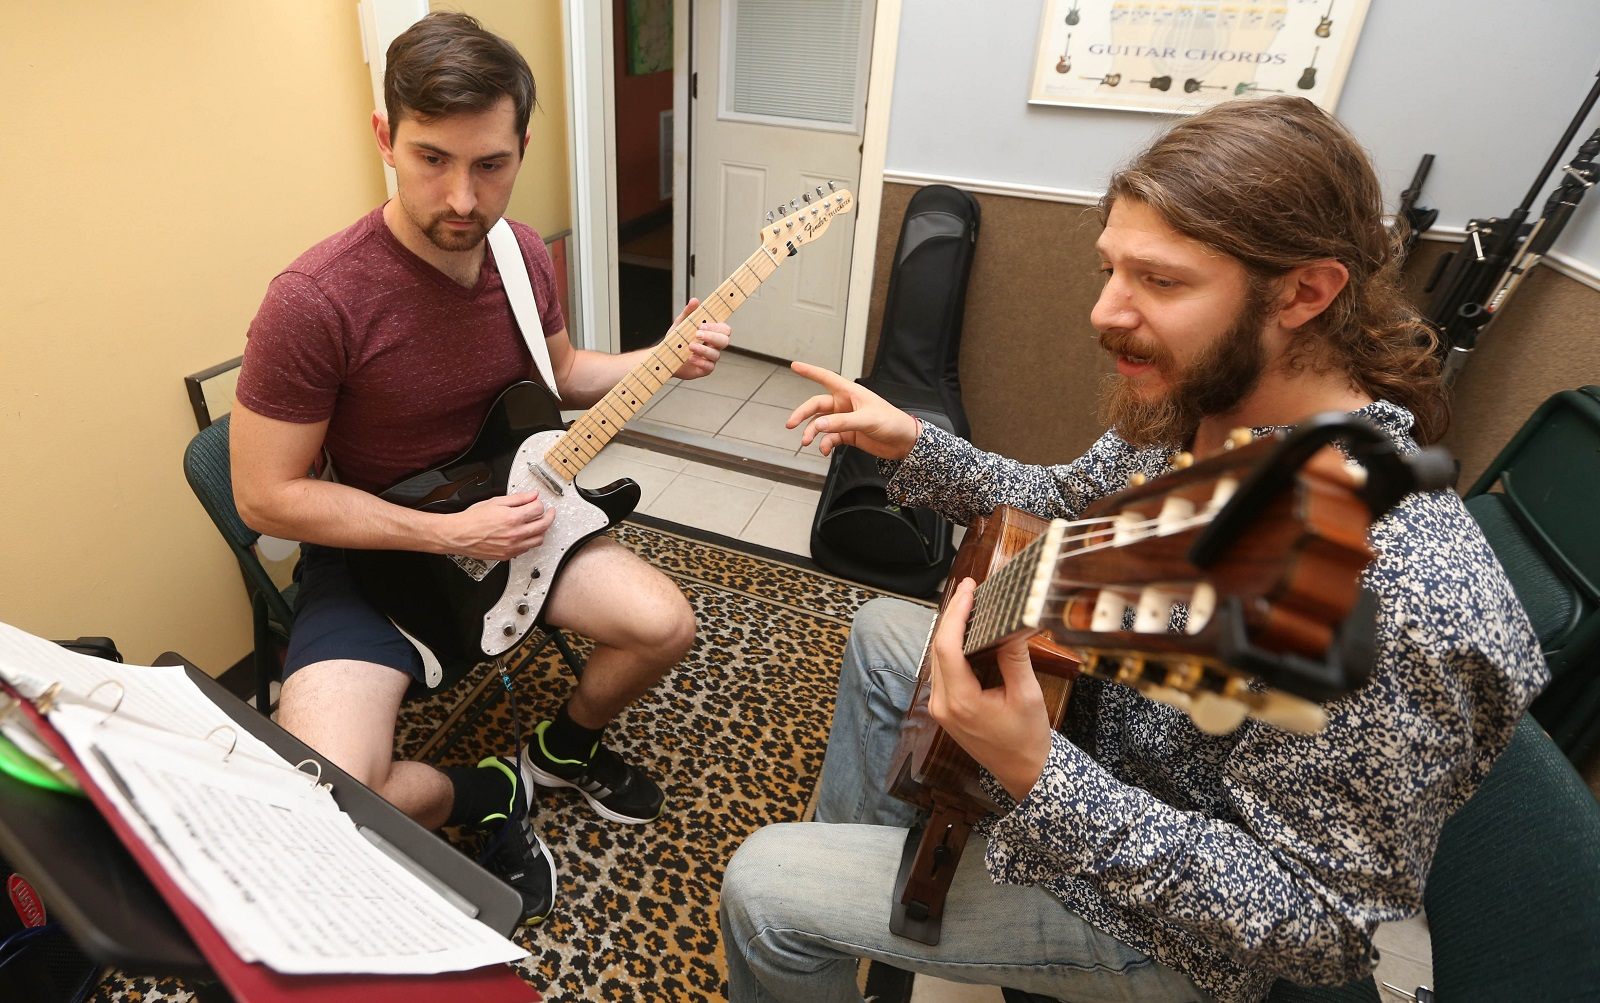 Drew Azzinaro, right, is the director of Daily Planet's music school. He gives a guitar lesson to Tom Graber of Buffalo. They have three rooms for individual lessons. (Sharon Cantillon/Buffalo News)